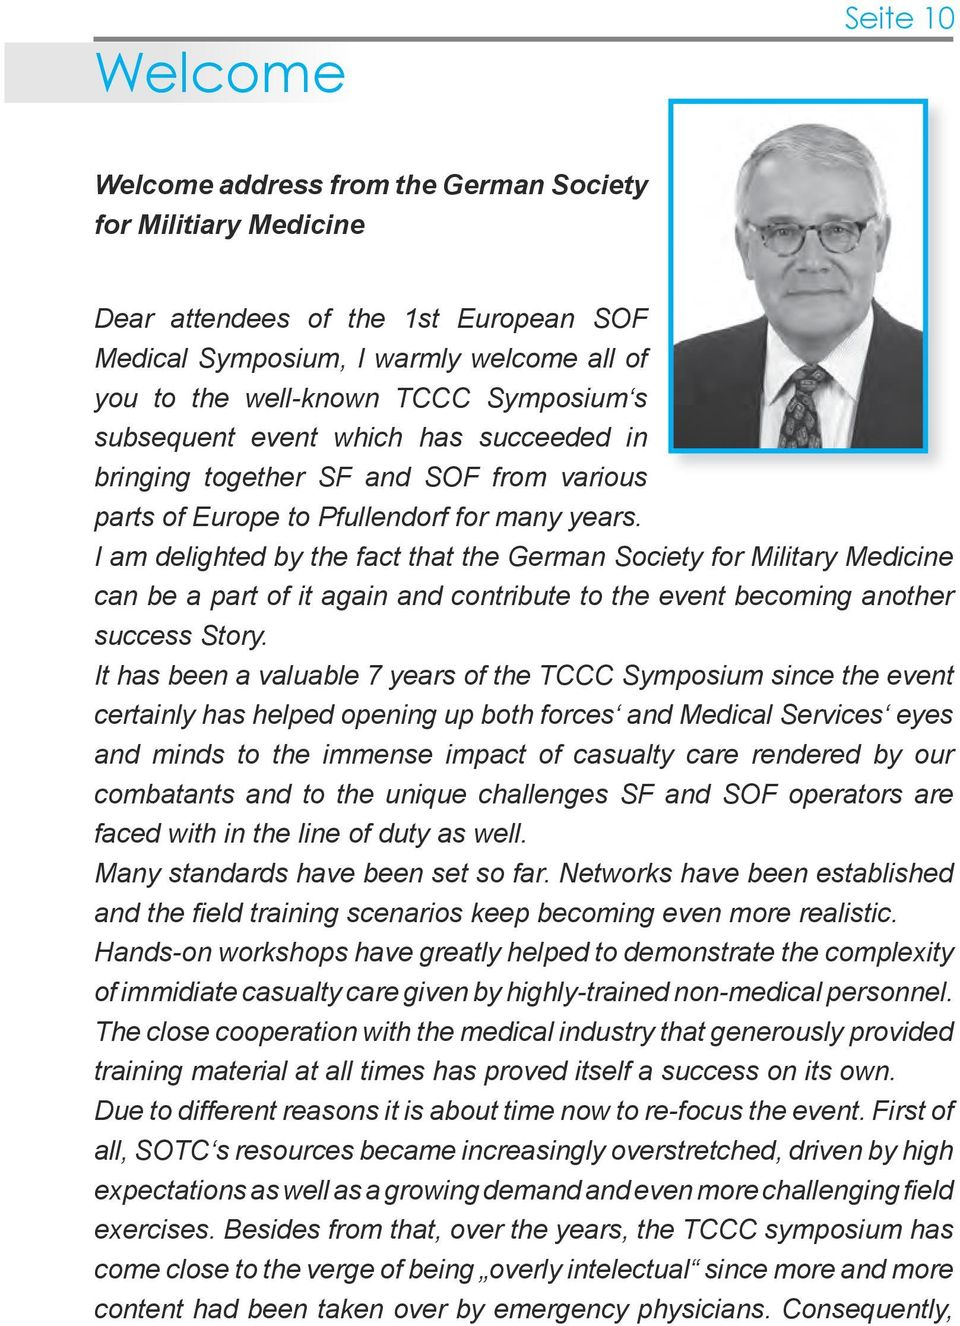 I am delighted by the fact that the German Society for Military Medicine can be a part of it again and contribute to the event becoming another success Story.